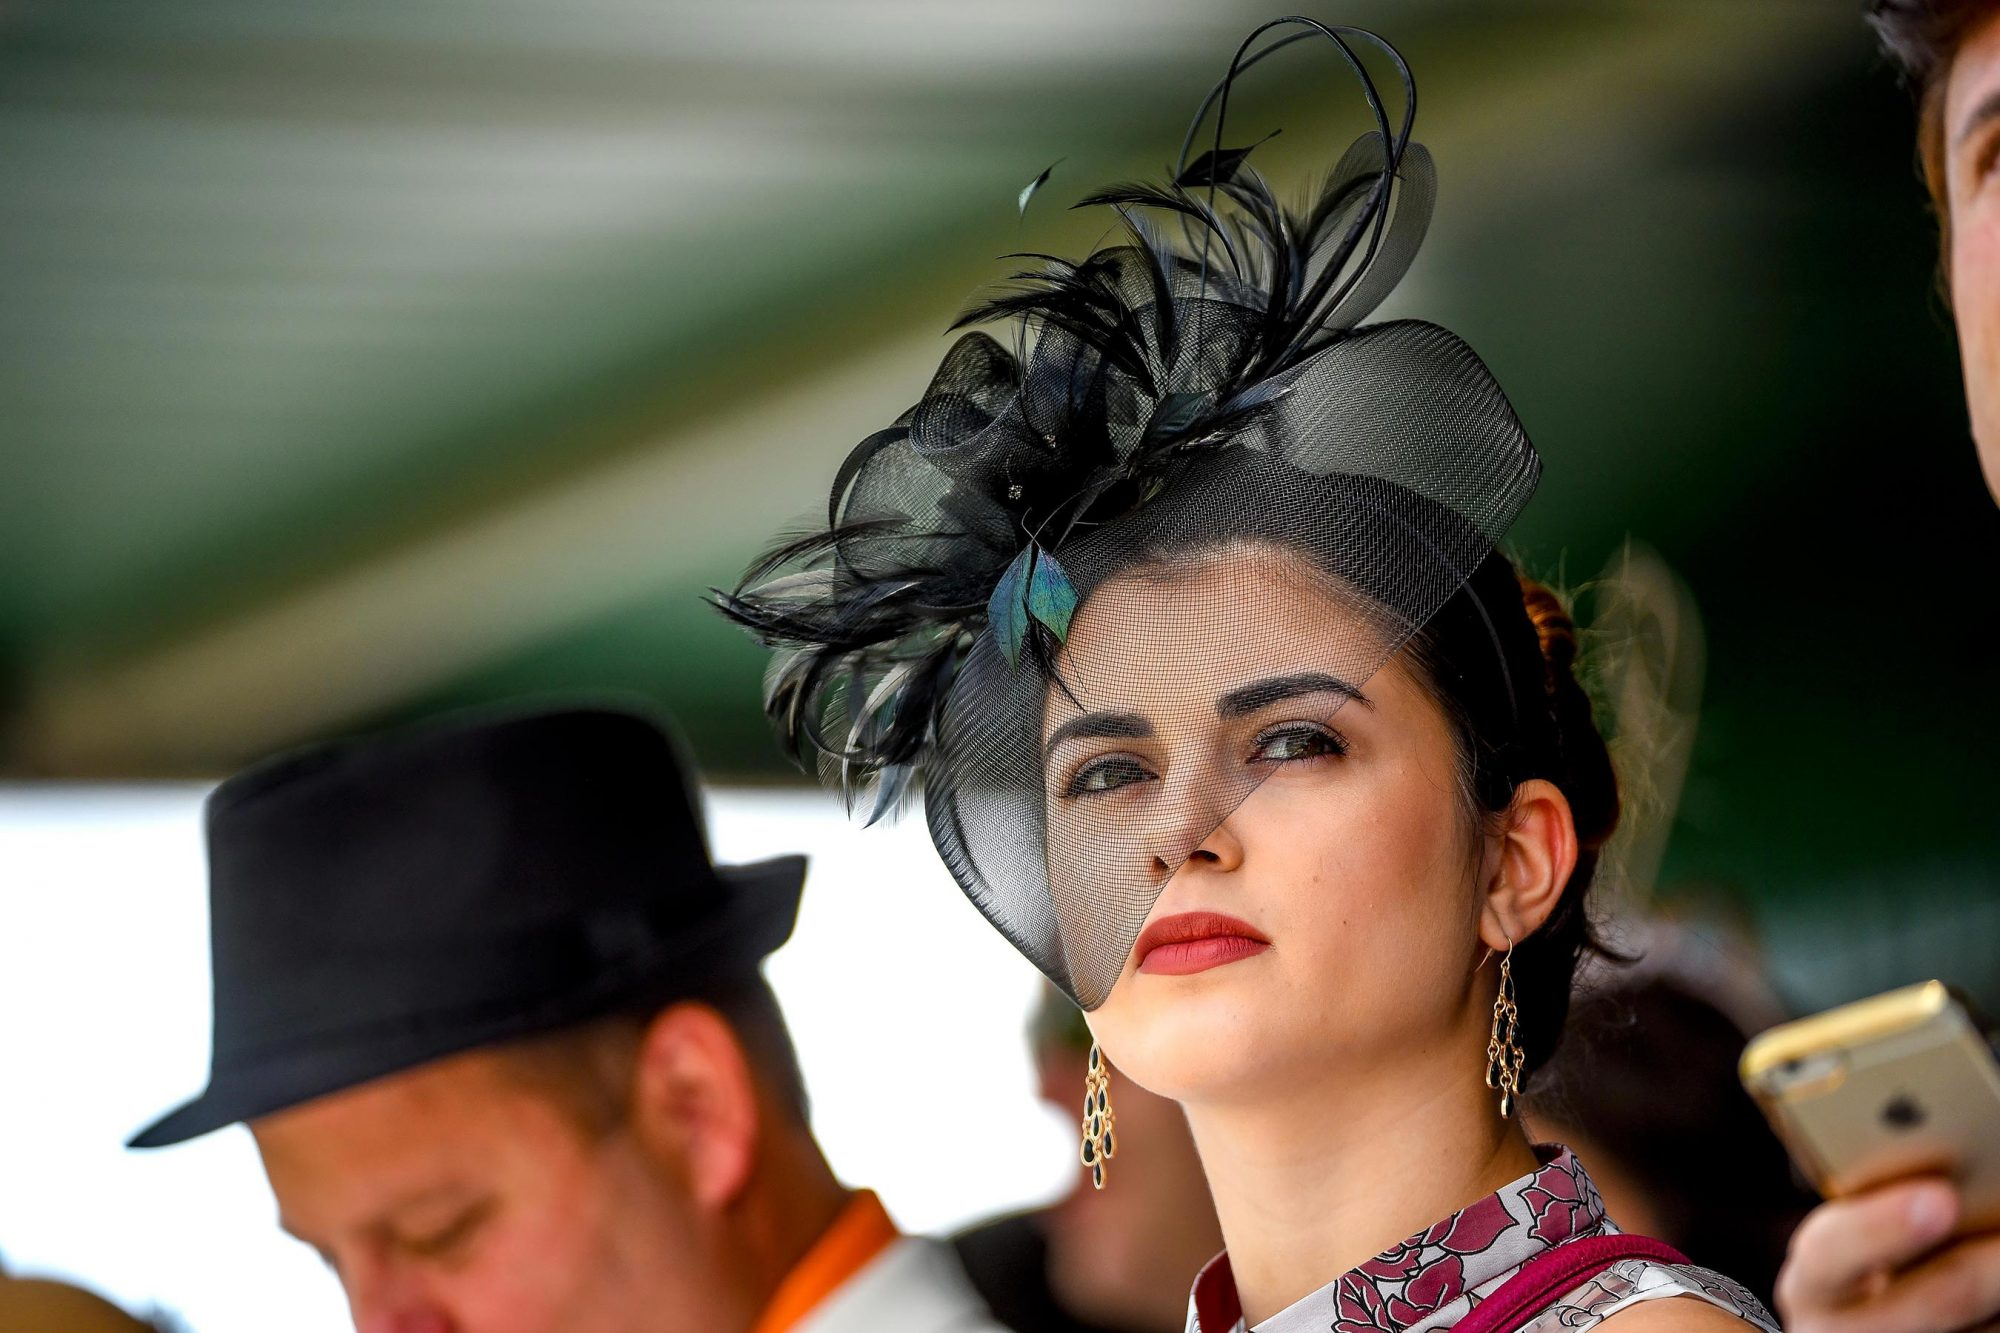 A woman wears a fascinator on Kentucky Derby Day